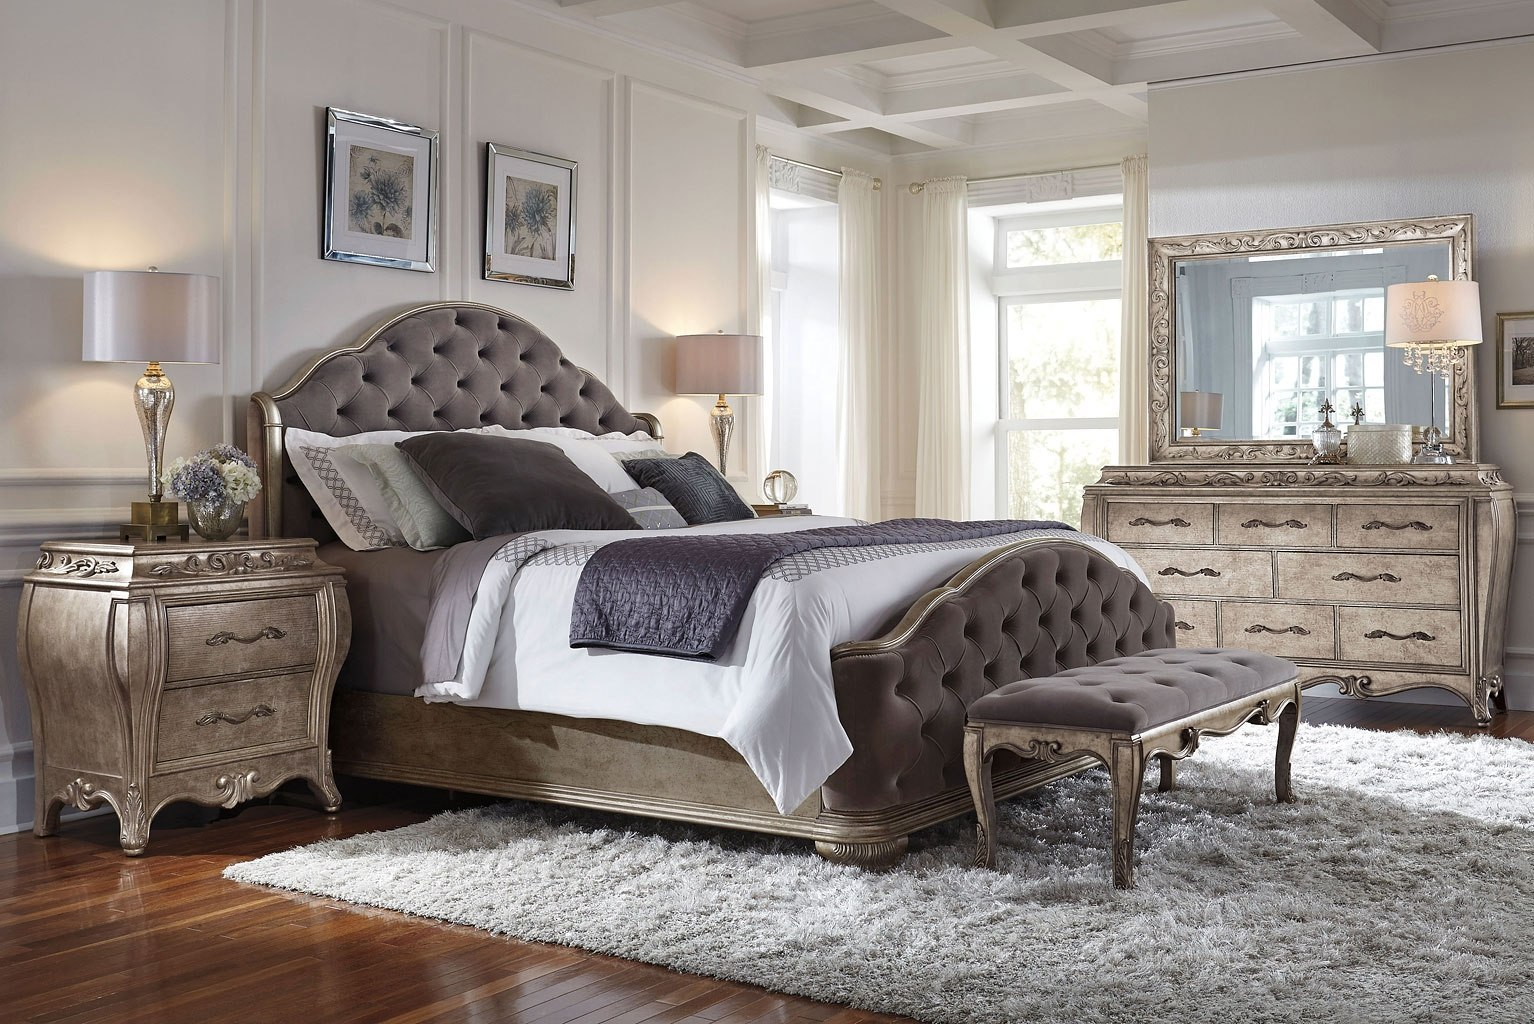 Impressive Upholstered Bedroom Set Ideas